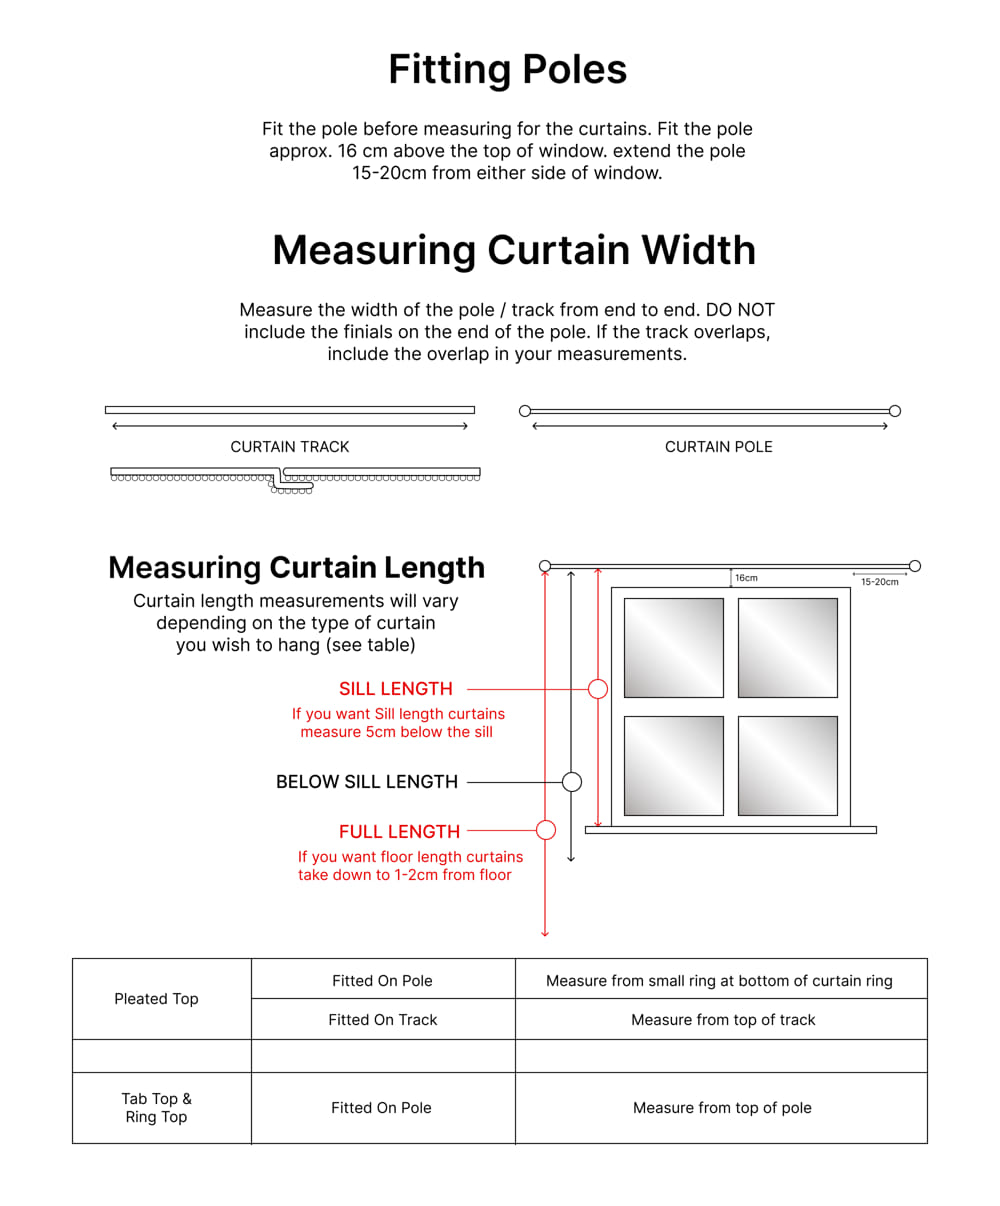 Graphic Summary of How to Measure for Curtains 2a6a7358e